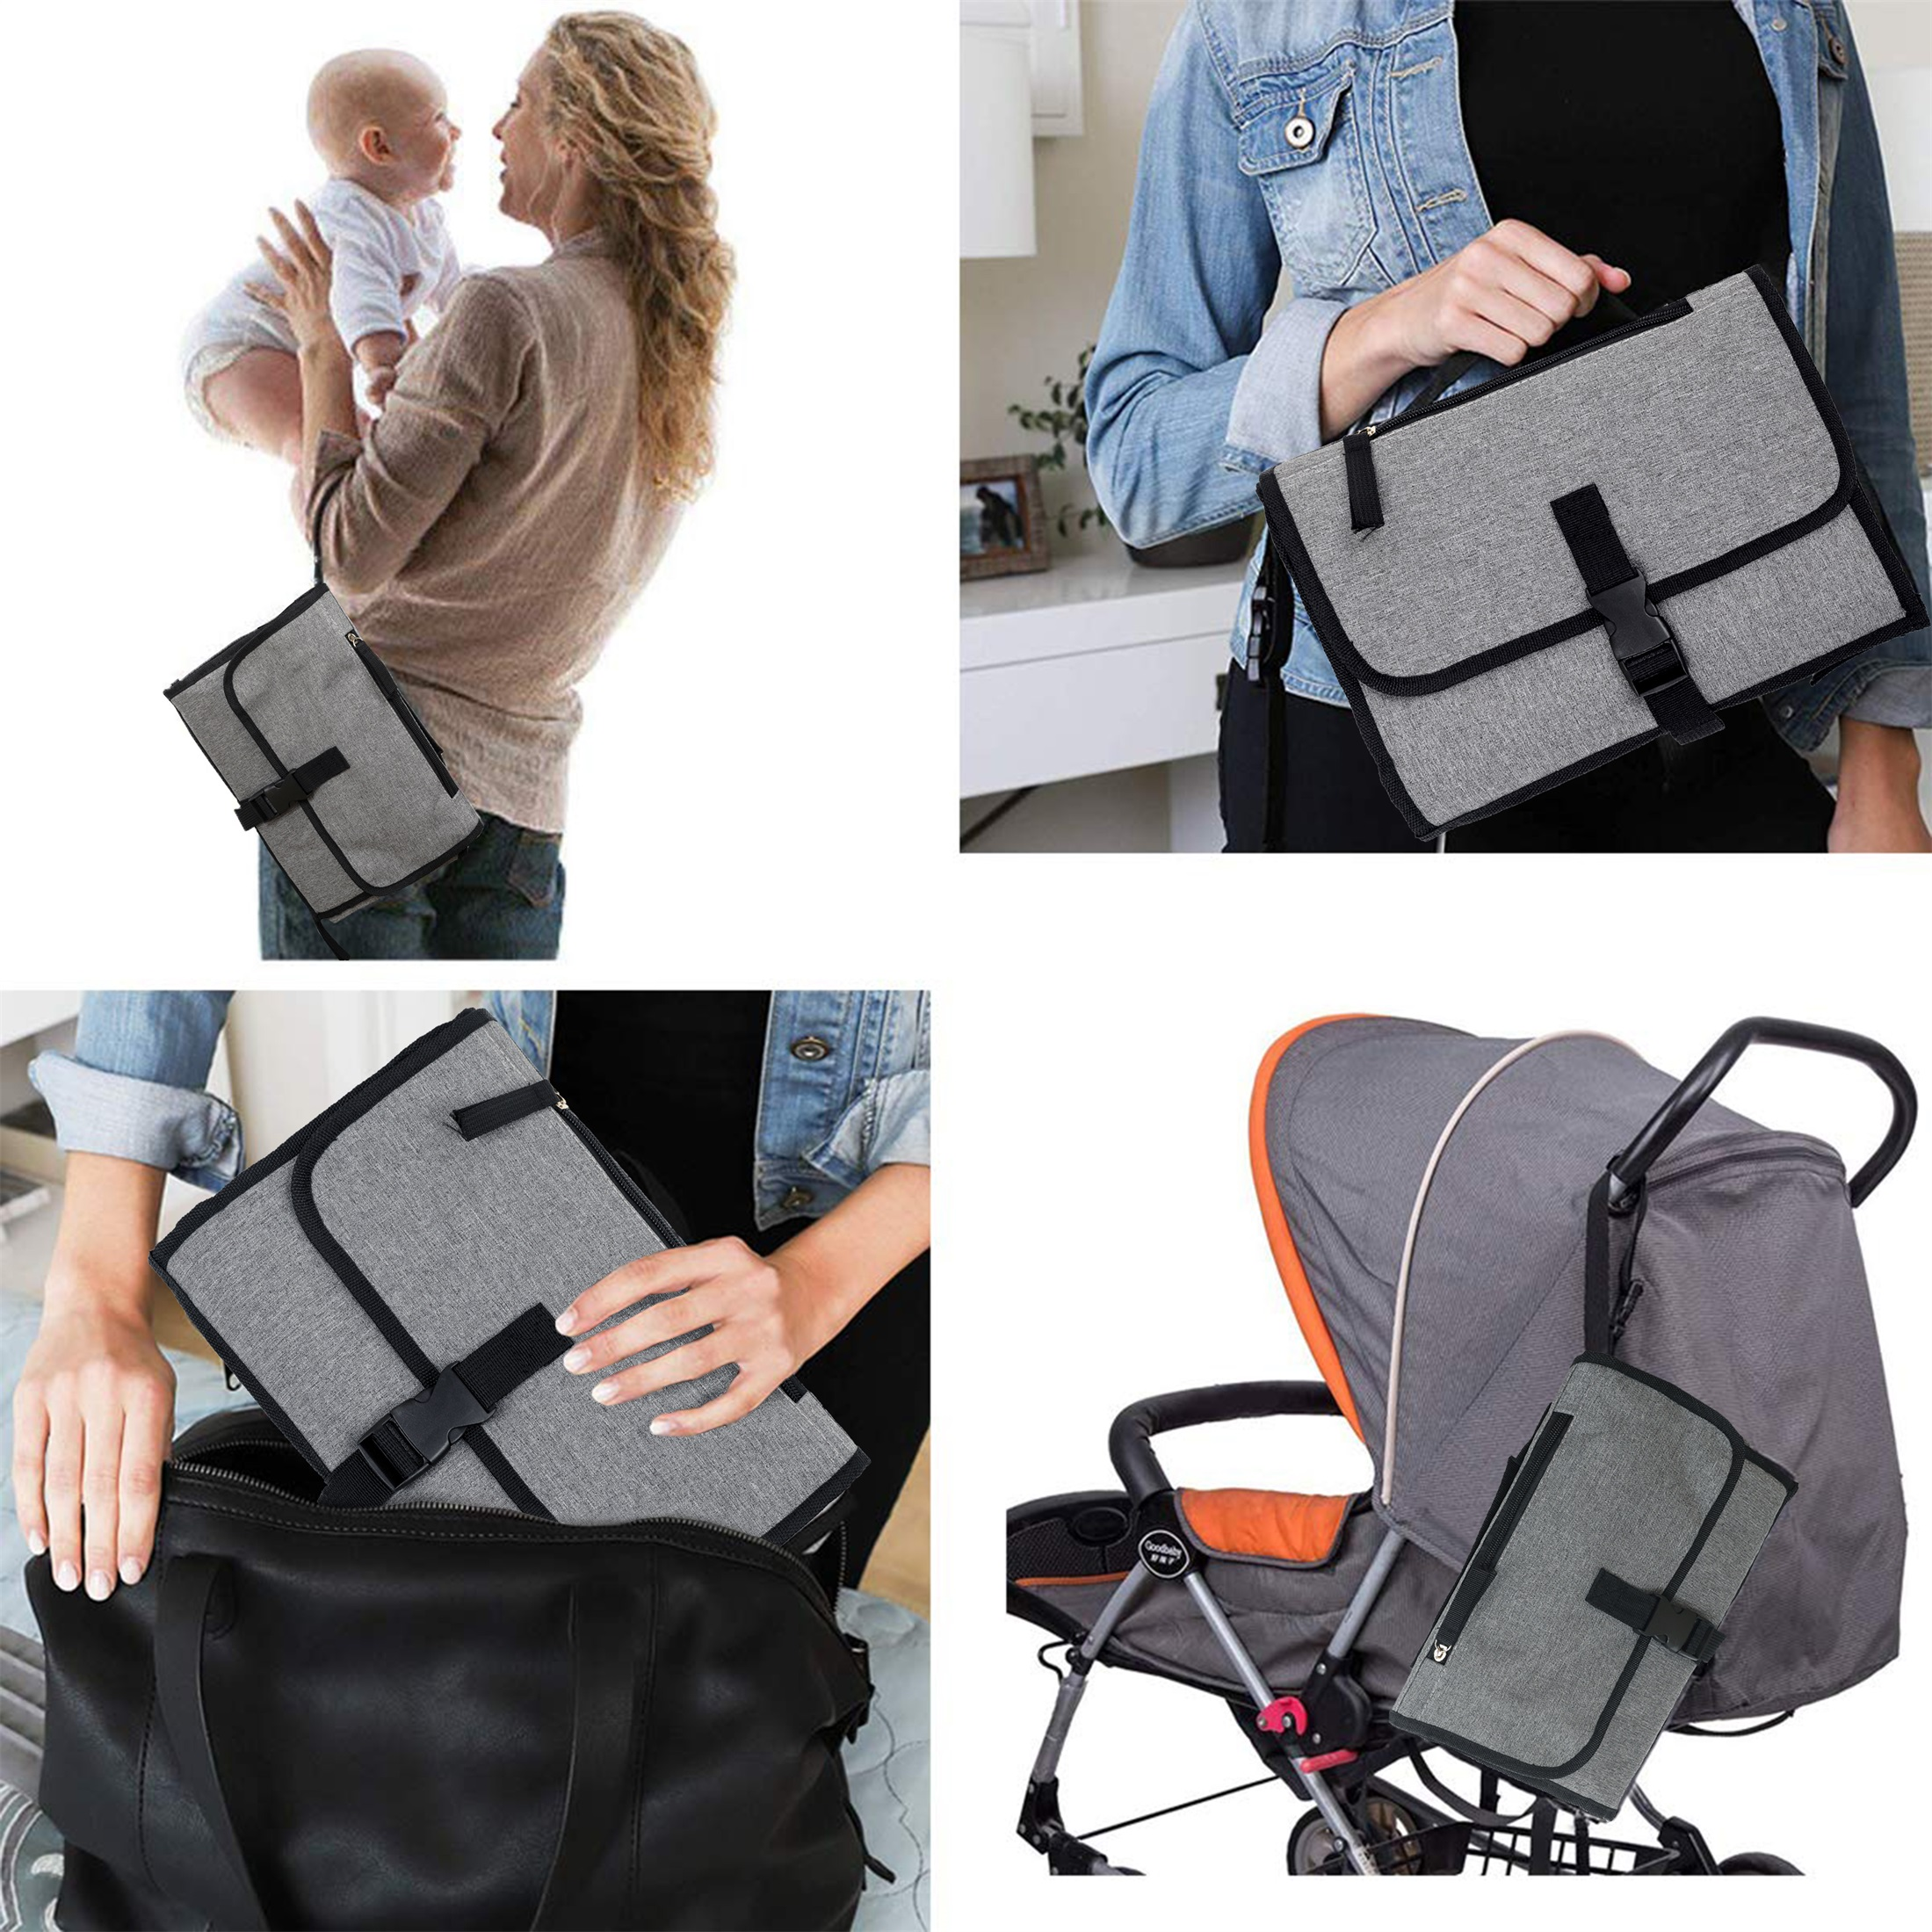 New 3 in 1 Waterproof Changing Pad Diaper Travel Multi function Portable Baby Diaper Cover Mat